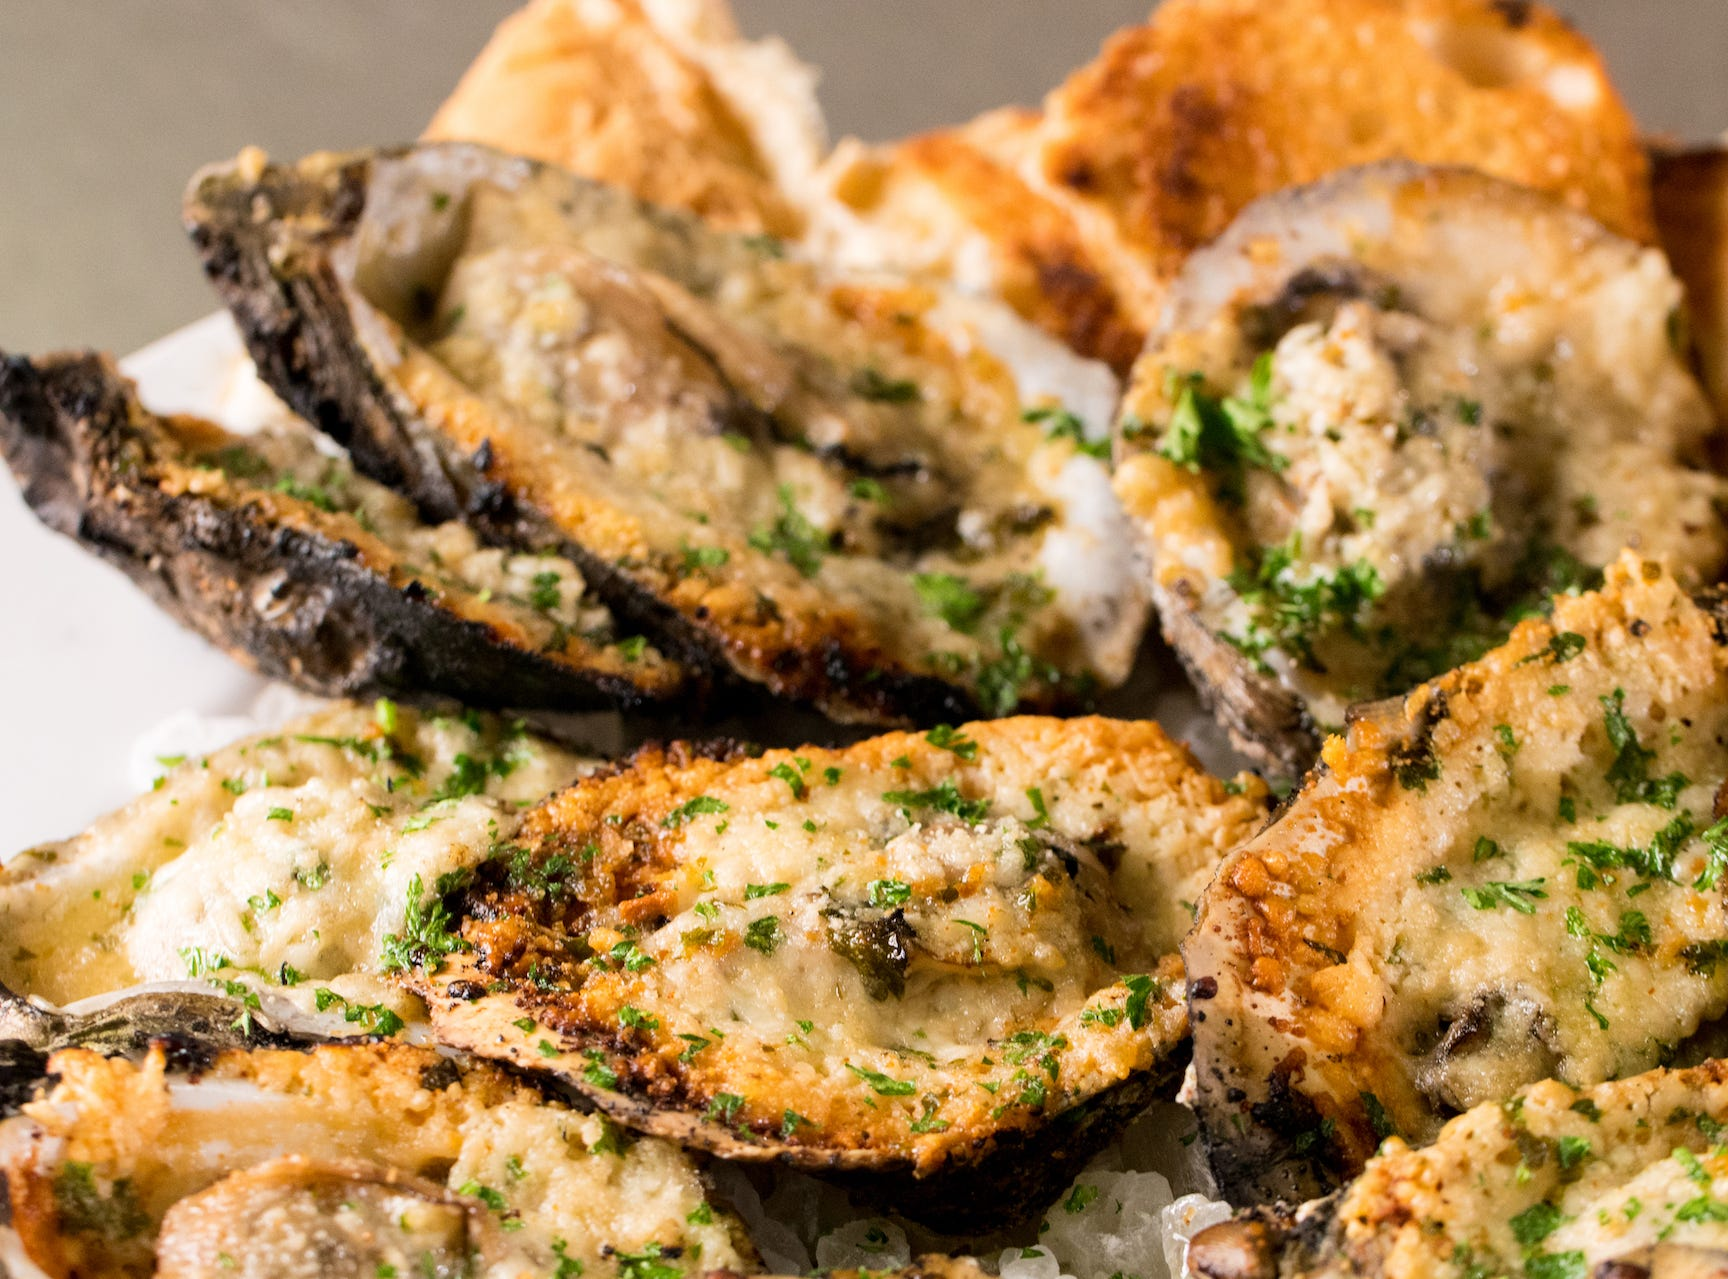 Want to surprise your family and serve a Louisiana seafood favorite for dinner? Chef Rusty's chargrilled oysters will transport your taste buds to the Gulf Coast and forever change the way you eat this succulent mollusk.